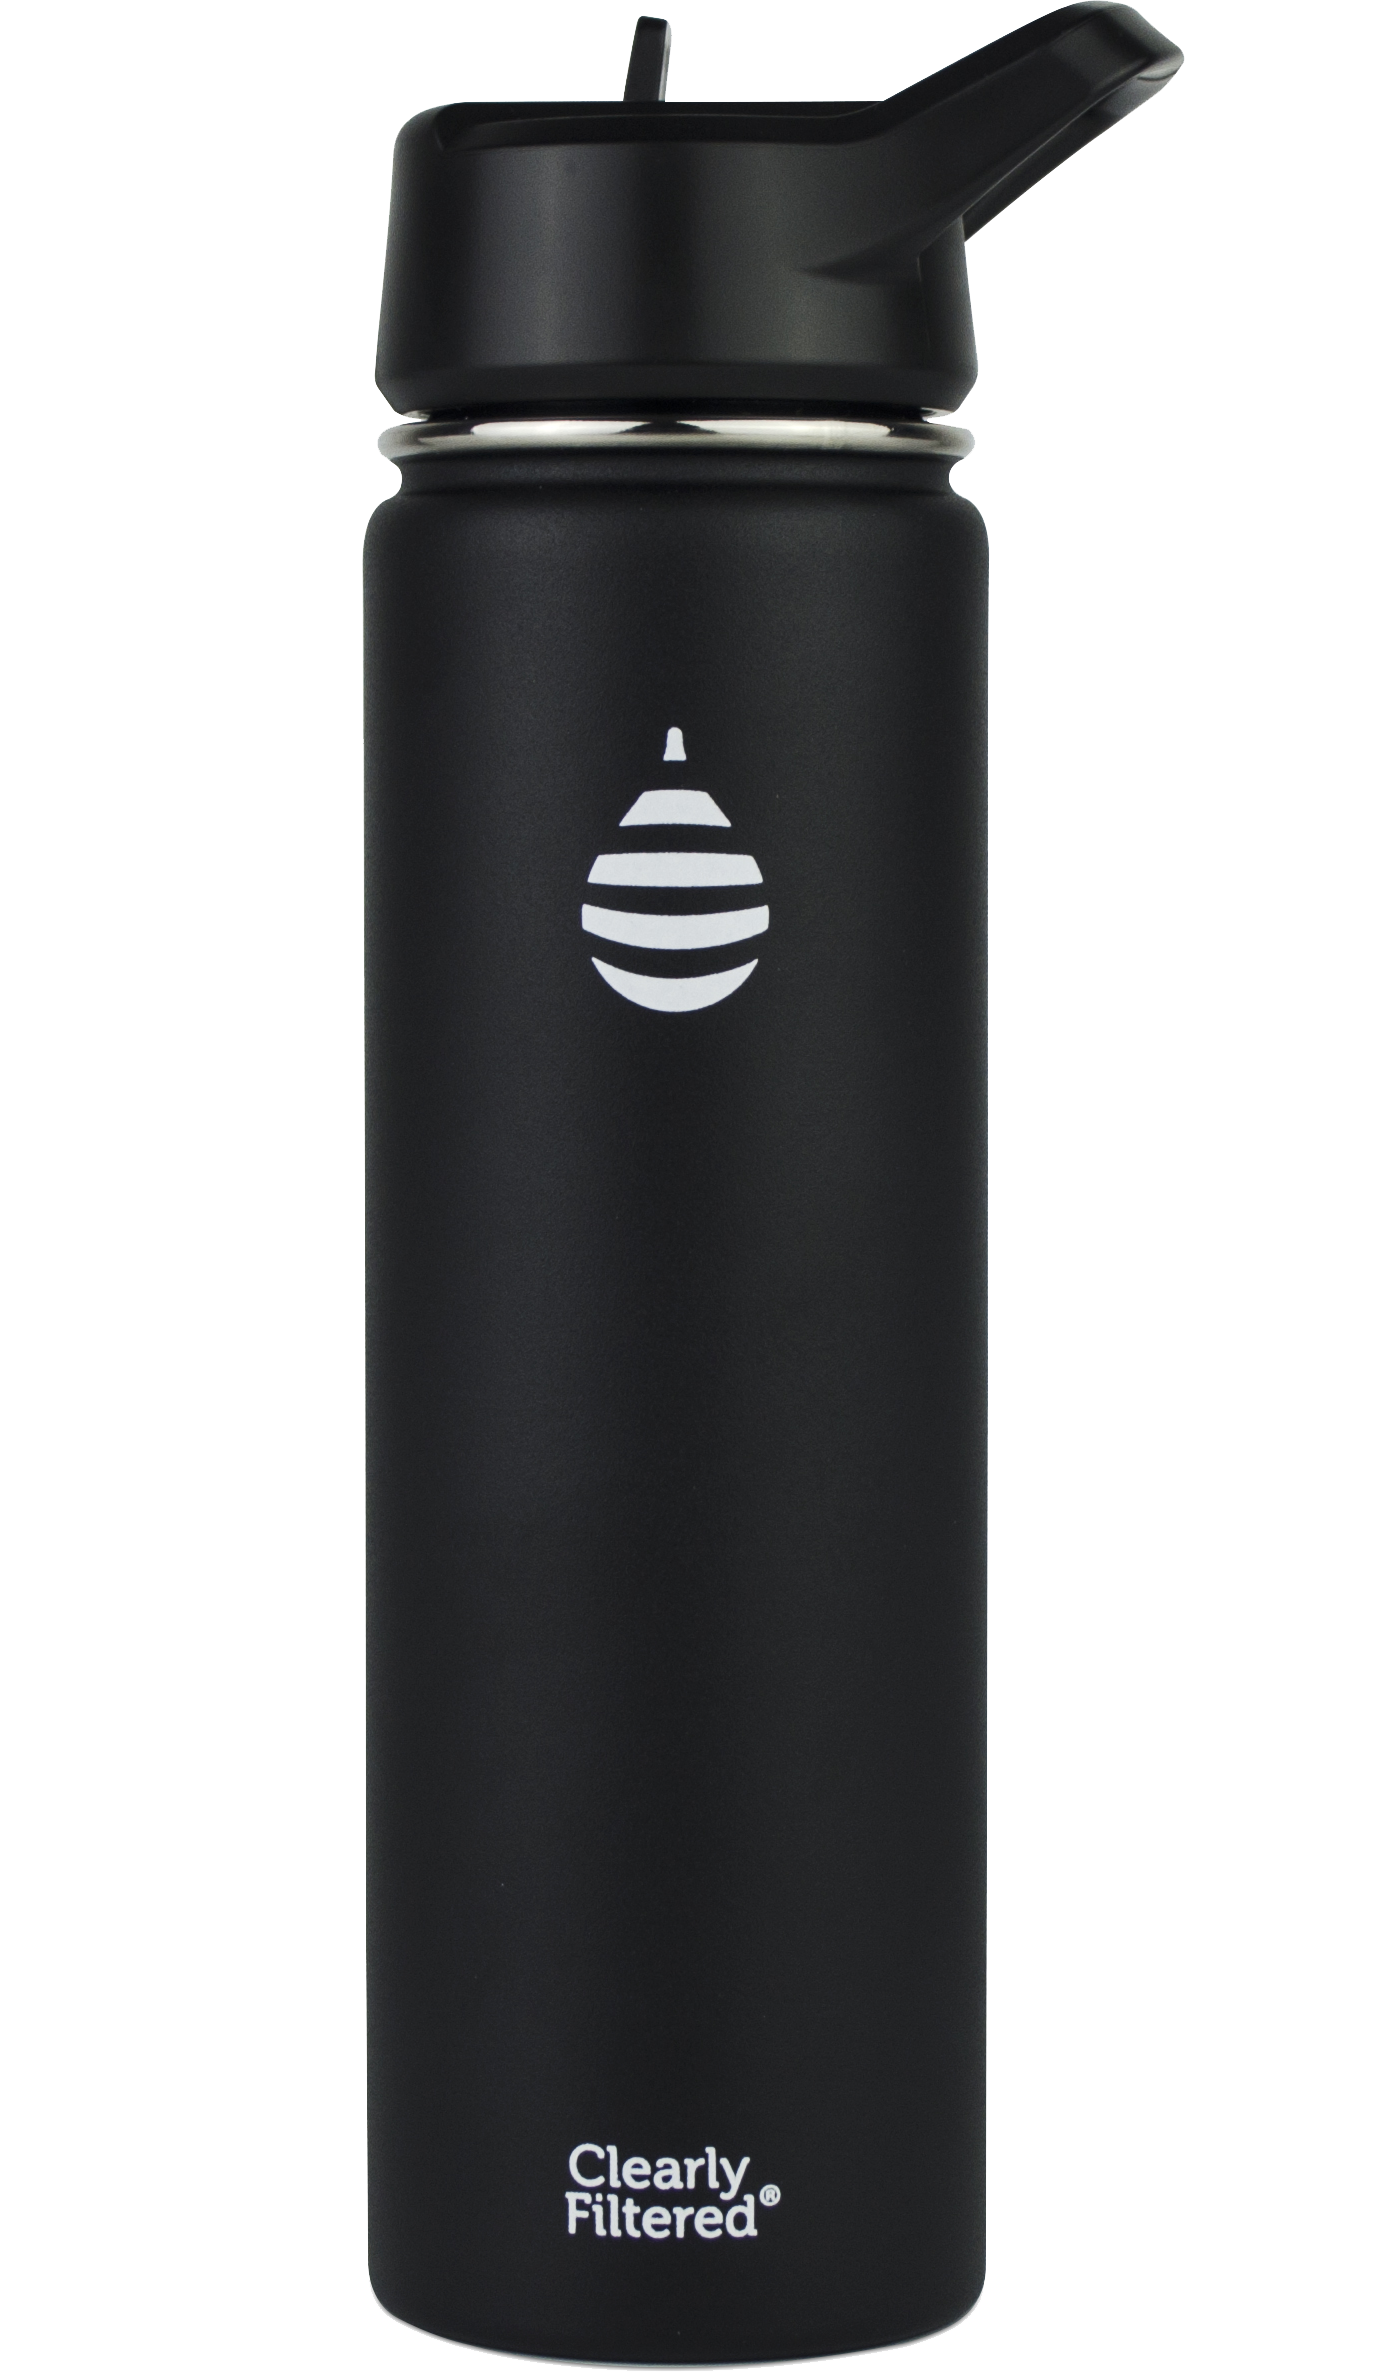 Clearly Filtered Insulated Stainless Steel Filtered Bottle